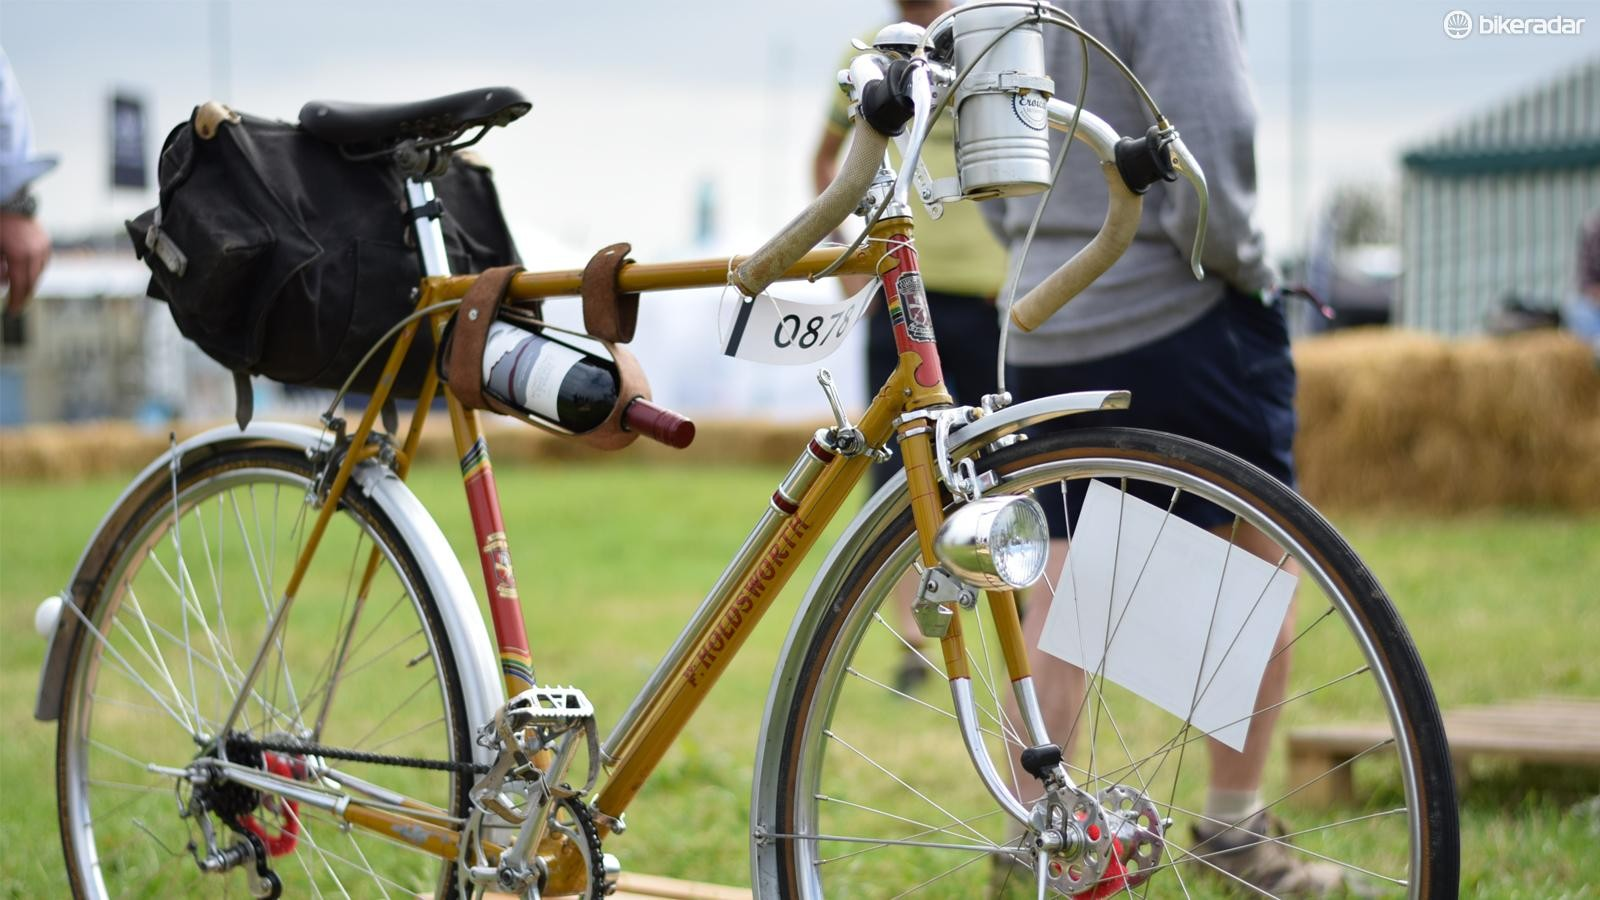 Not quite sure what model this F. Holdsworth is but it has a wine carrier. So it's in